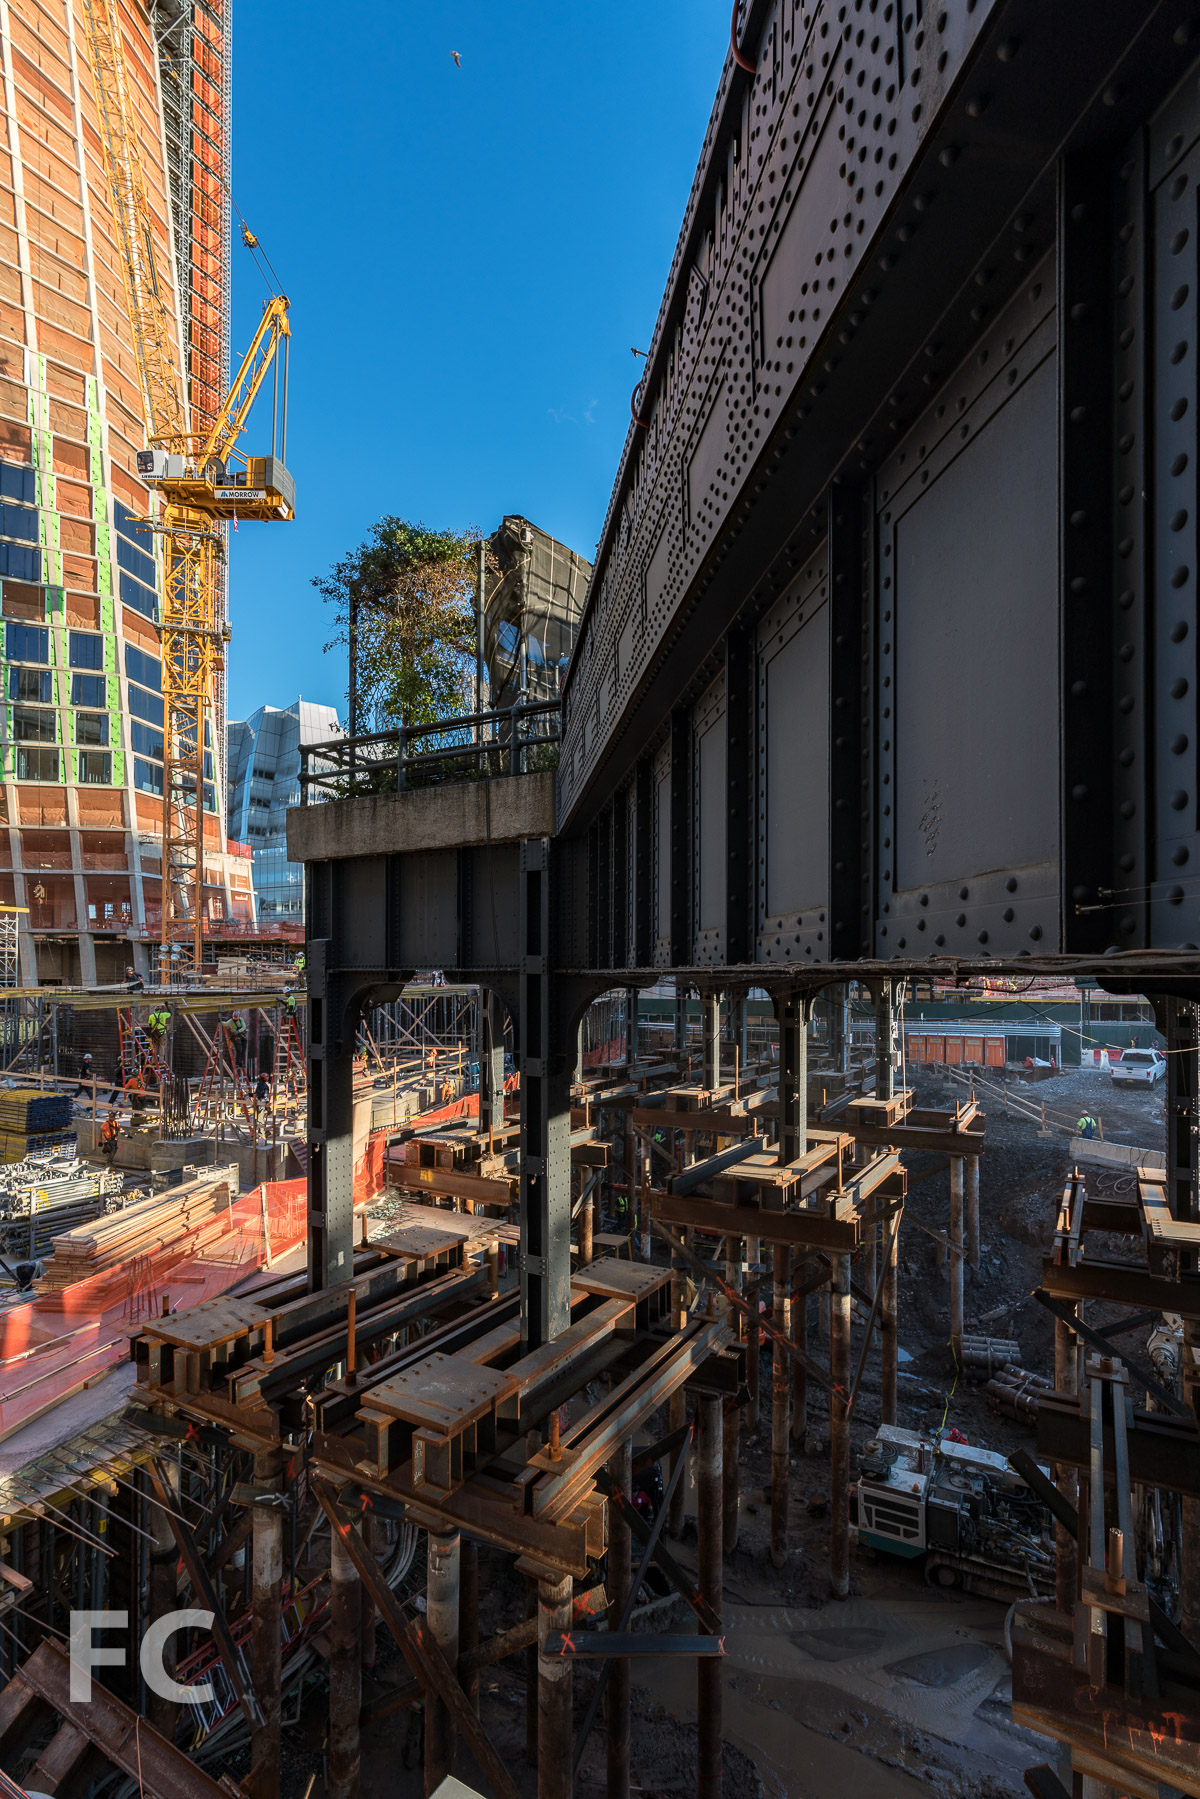 East tower and sitework underneath the High Line.